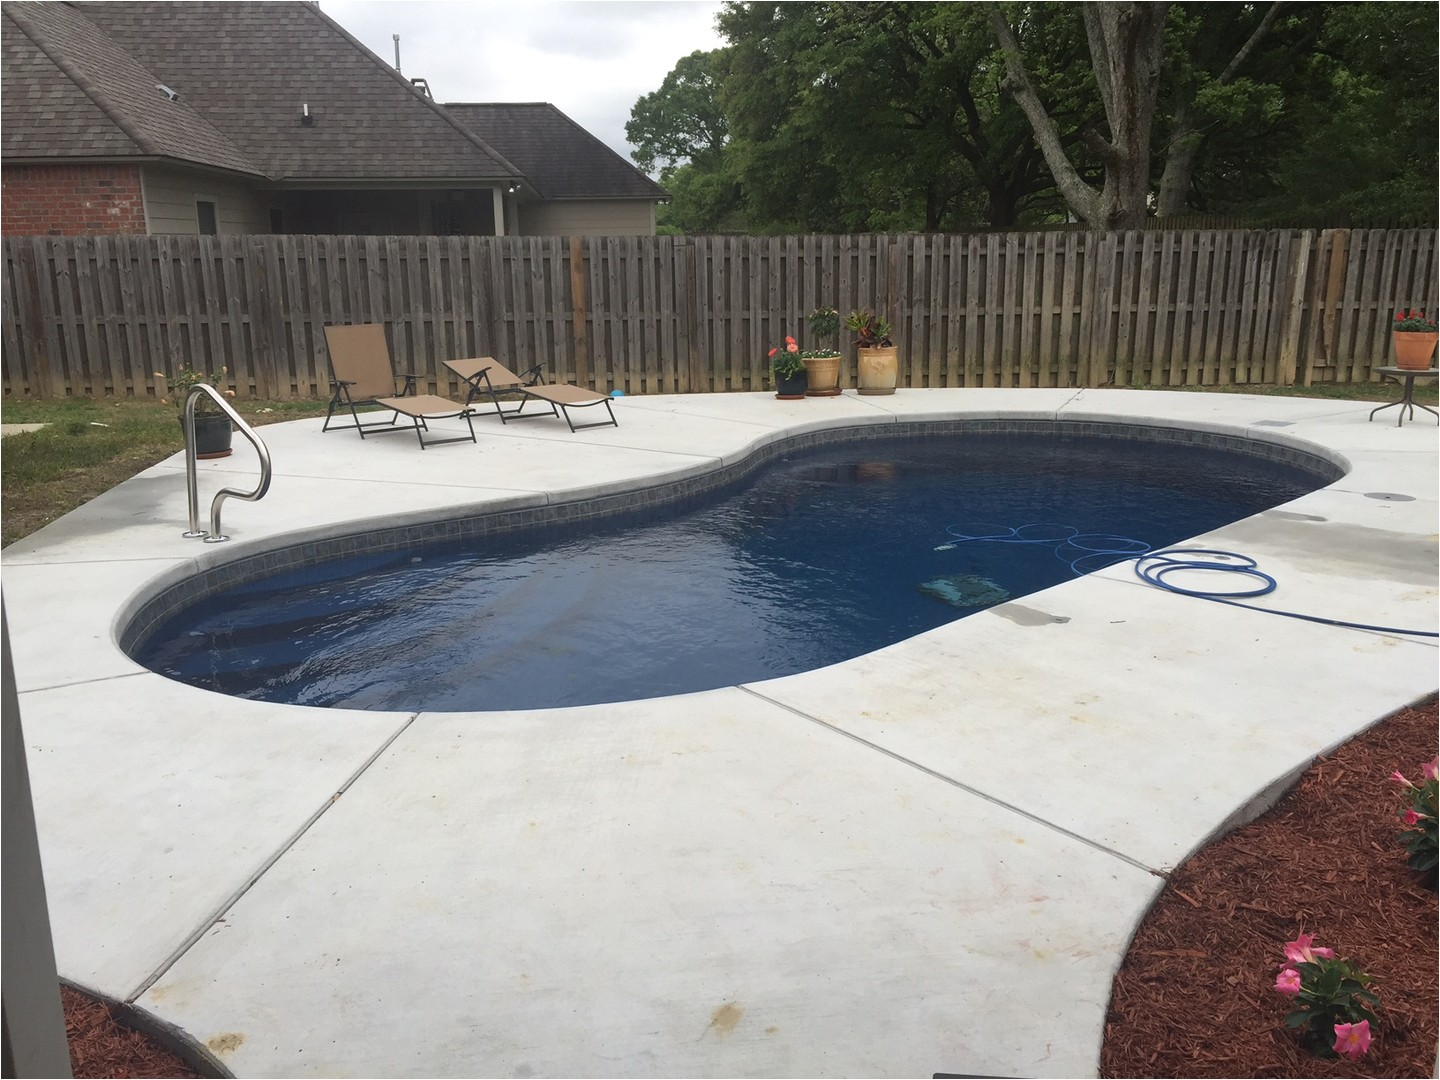 Fiberglass Swimming Pools Baton Rouge Central Pools Inc Swimming Pools Fiberglass Pools